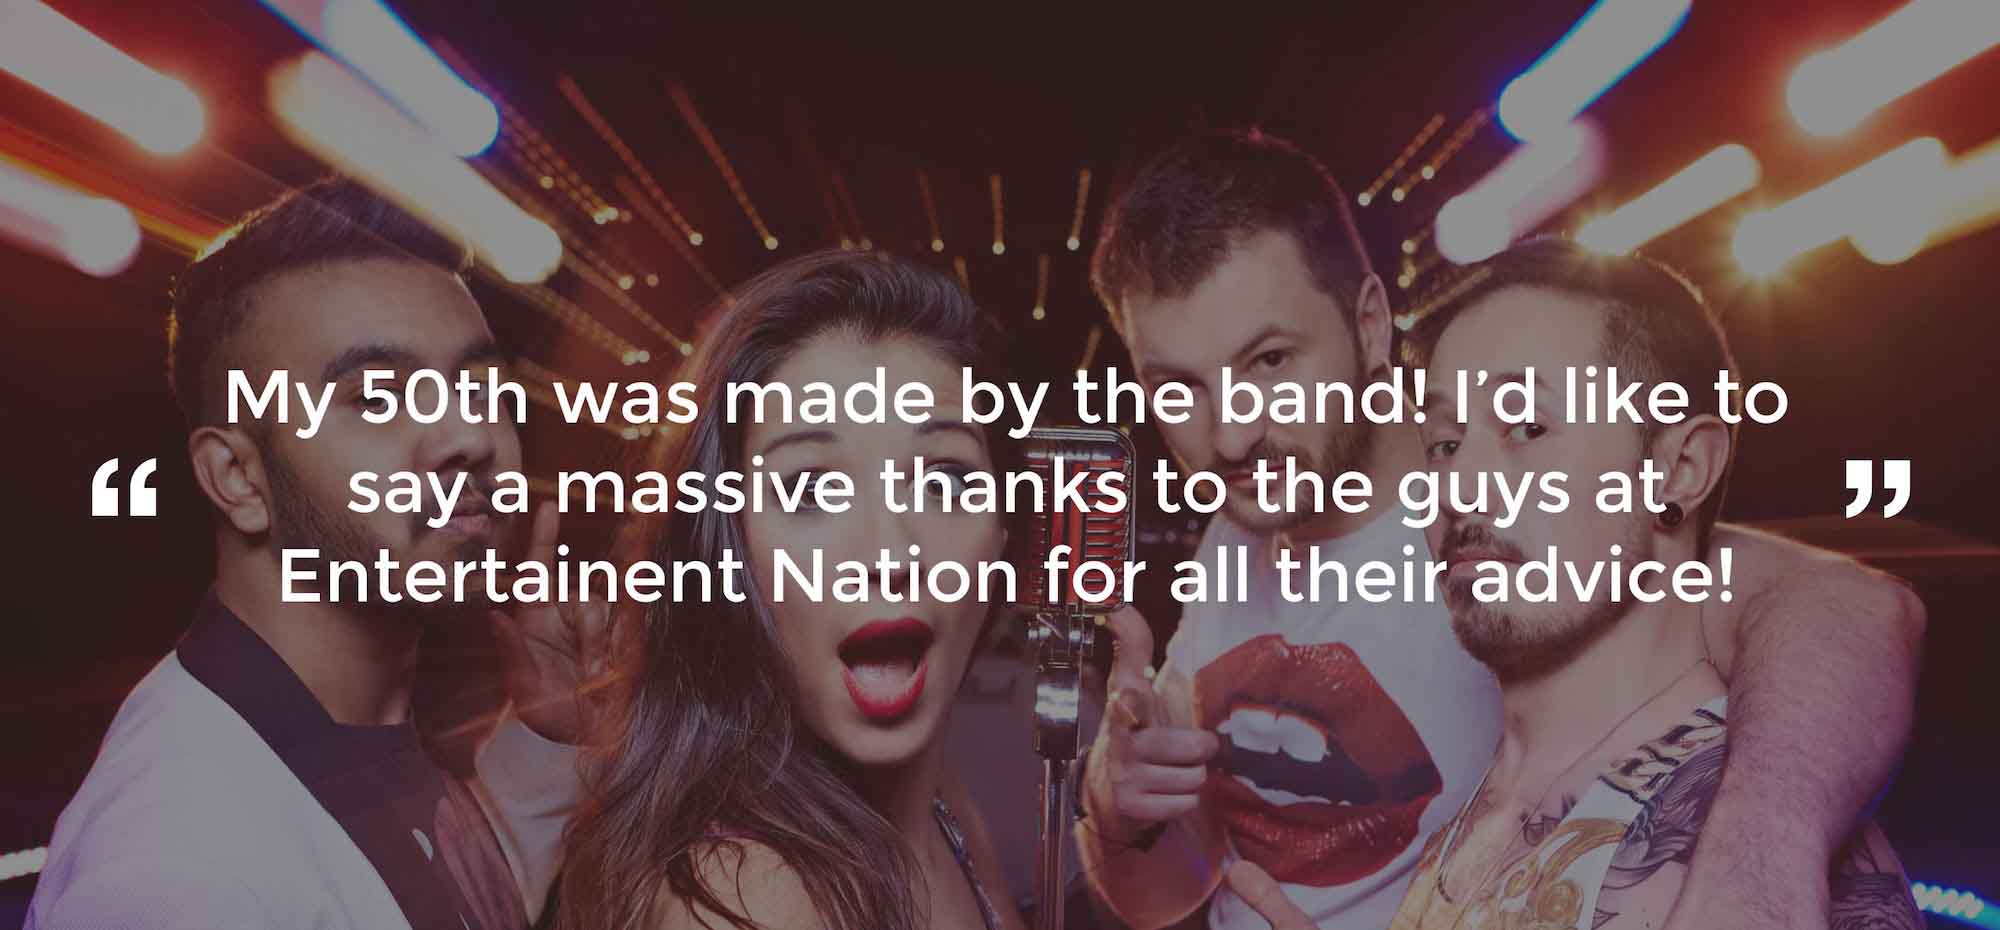 Client Review of a Party Band North Scotland